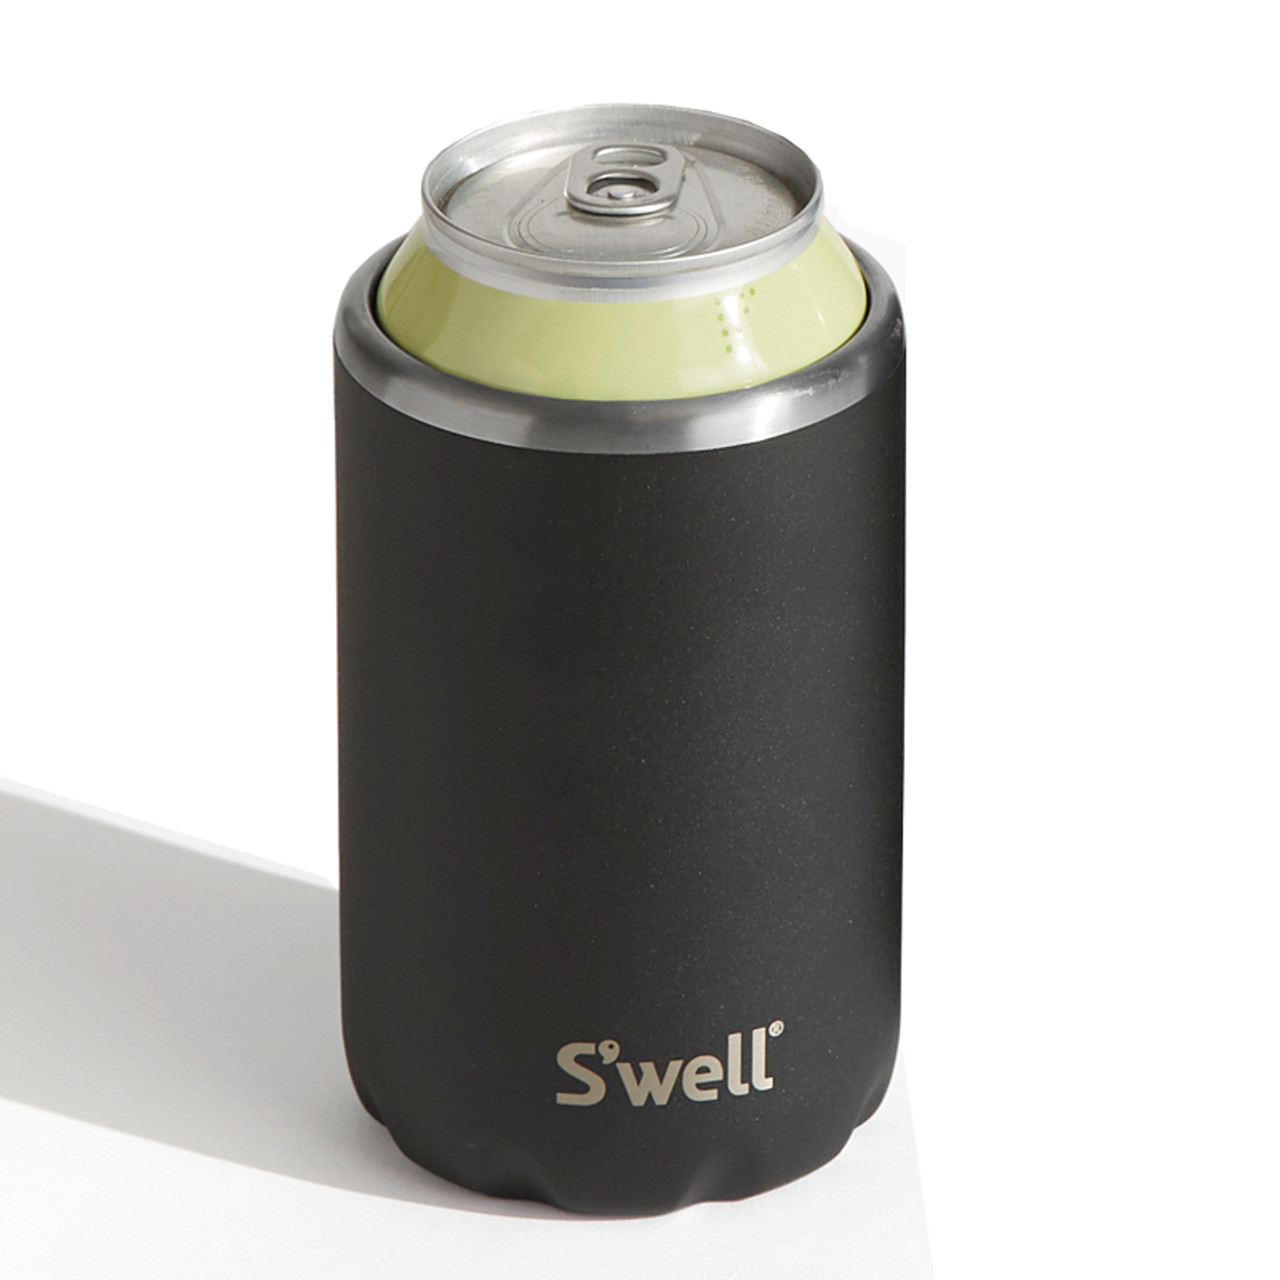 S'WELL DRINK CHILLER - ONYX